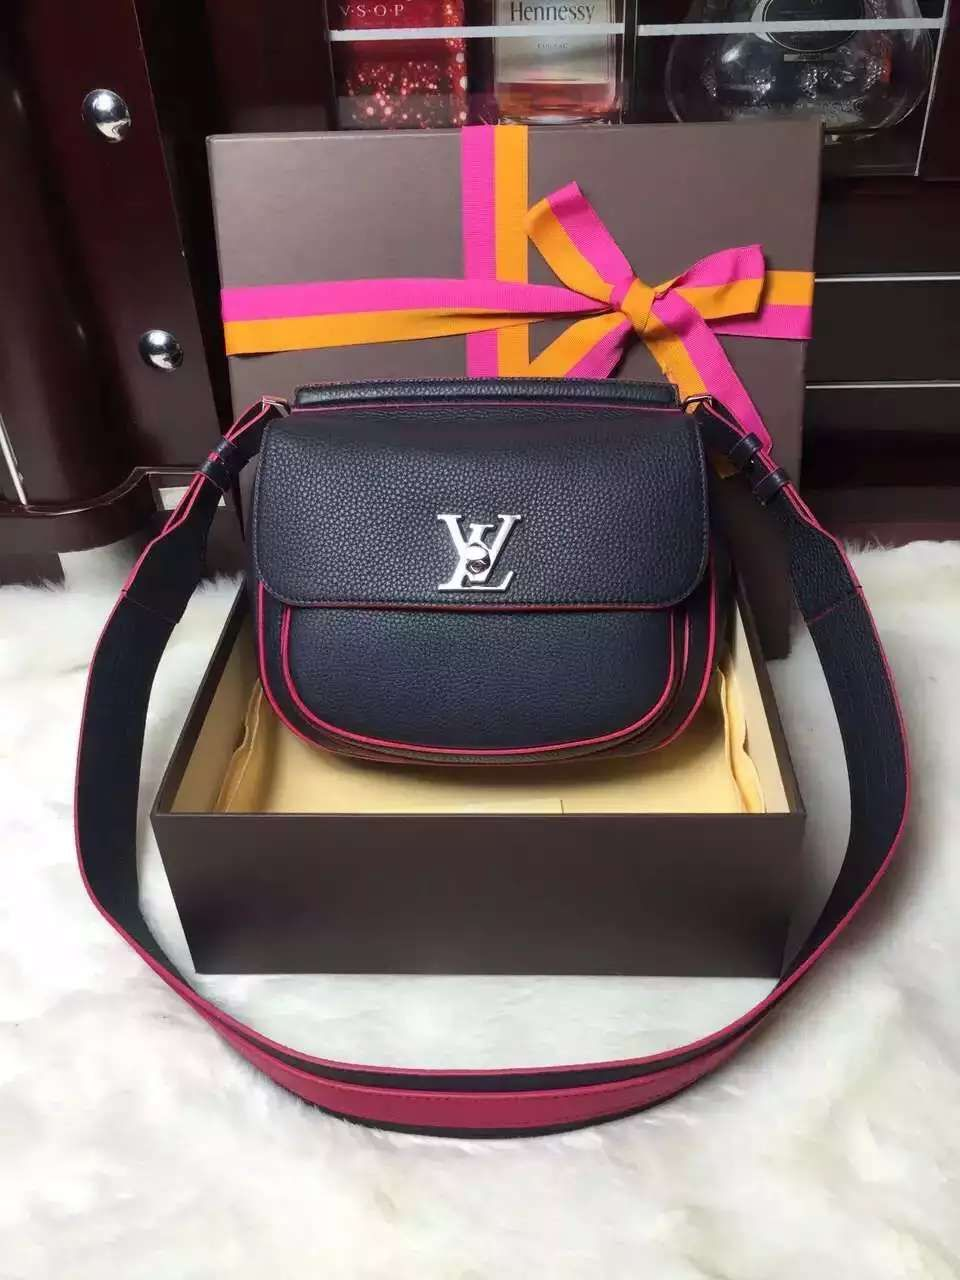 louis vuitton Bag, ID : 36953(FORSALE:a@yybags.com), louis purse, sale louis vuitton bags, louis vuitton bags for women, www louisvuitton com bags outlet, house of louis vuitton, louis vuitton sports backpacks, louis vuitton italian handbags, louis vinton, lui veton, louis vuitton wallet app, best louis vuitton handbag, louis vuitton tignanello handbags #louisvuittonBag #louisvuitton #louis #vuitton #fabric #purses